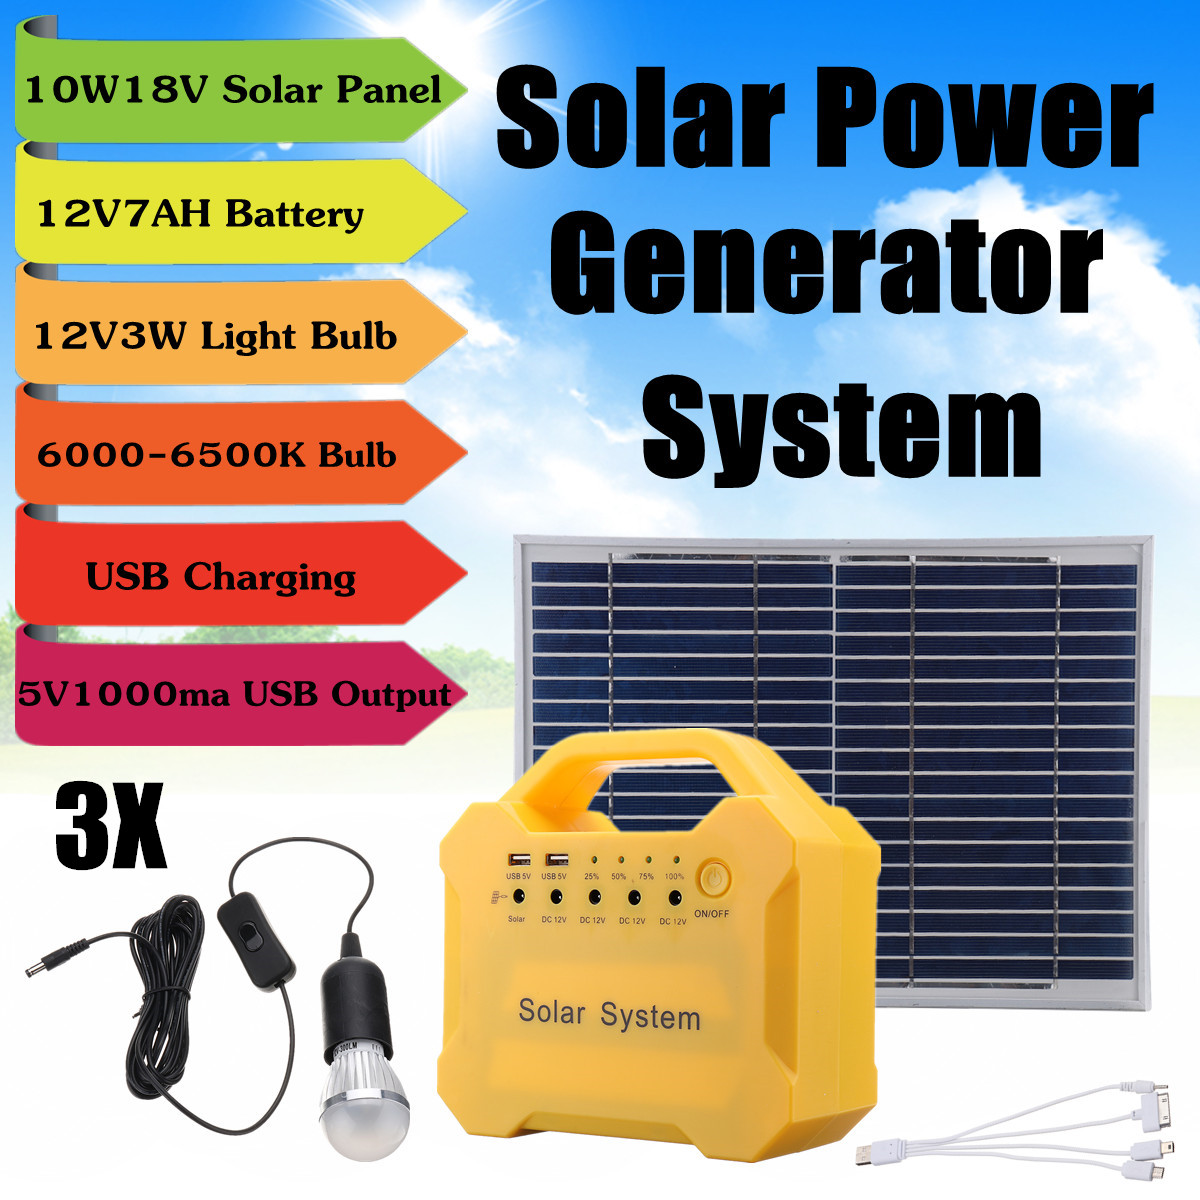 LED Light Home Outdoor 18V USB Charge System Solar Panel Power Storage Generator Large Capacity Battery Energy Saving Camping hoox c02 magic stone series 6000mah polymer power bank dual usb quick charge energy saving green